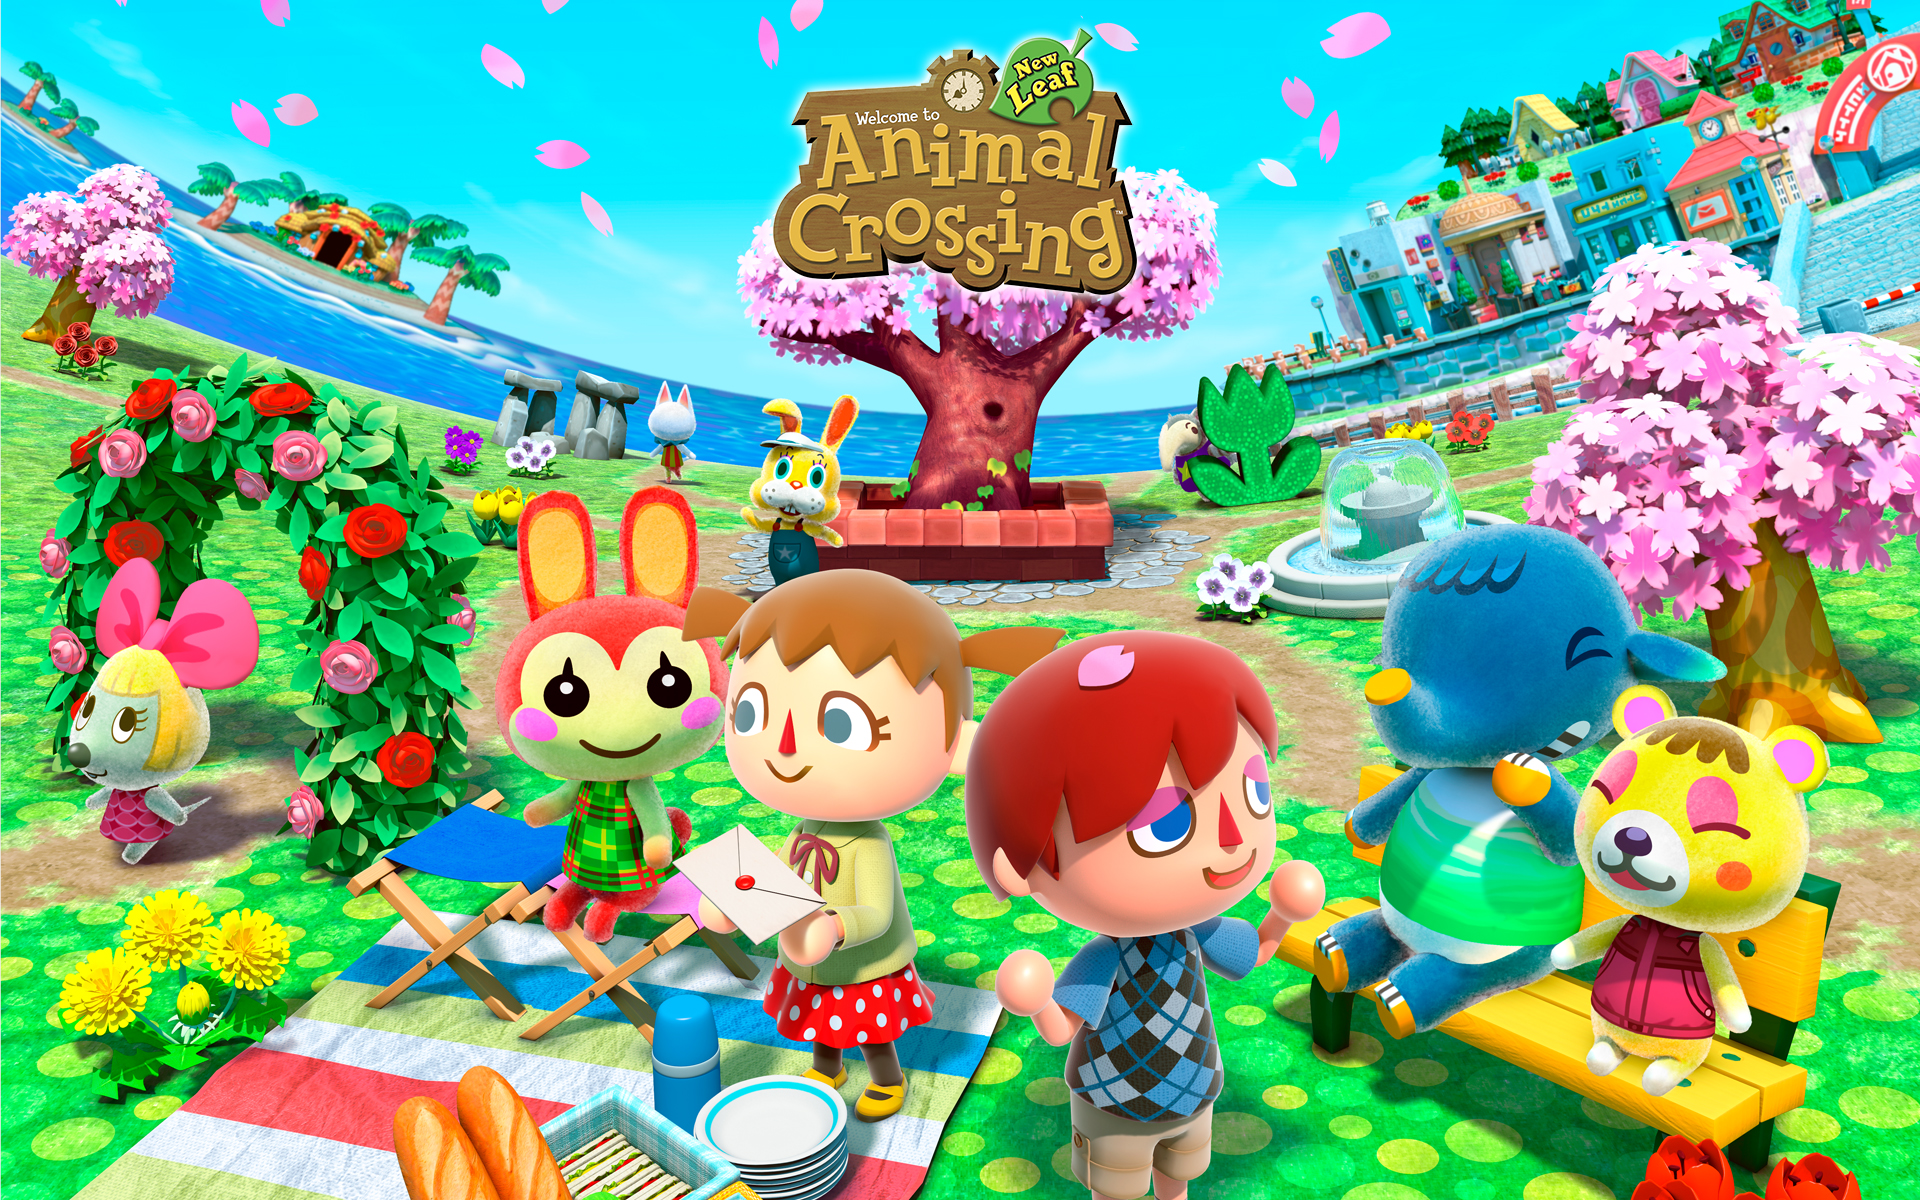 Fire Emblem and Animal Crossing Mobile Apps Announced